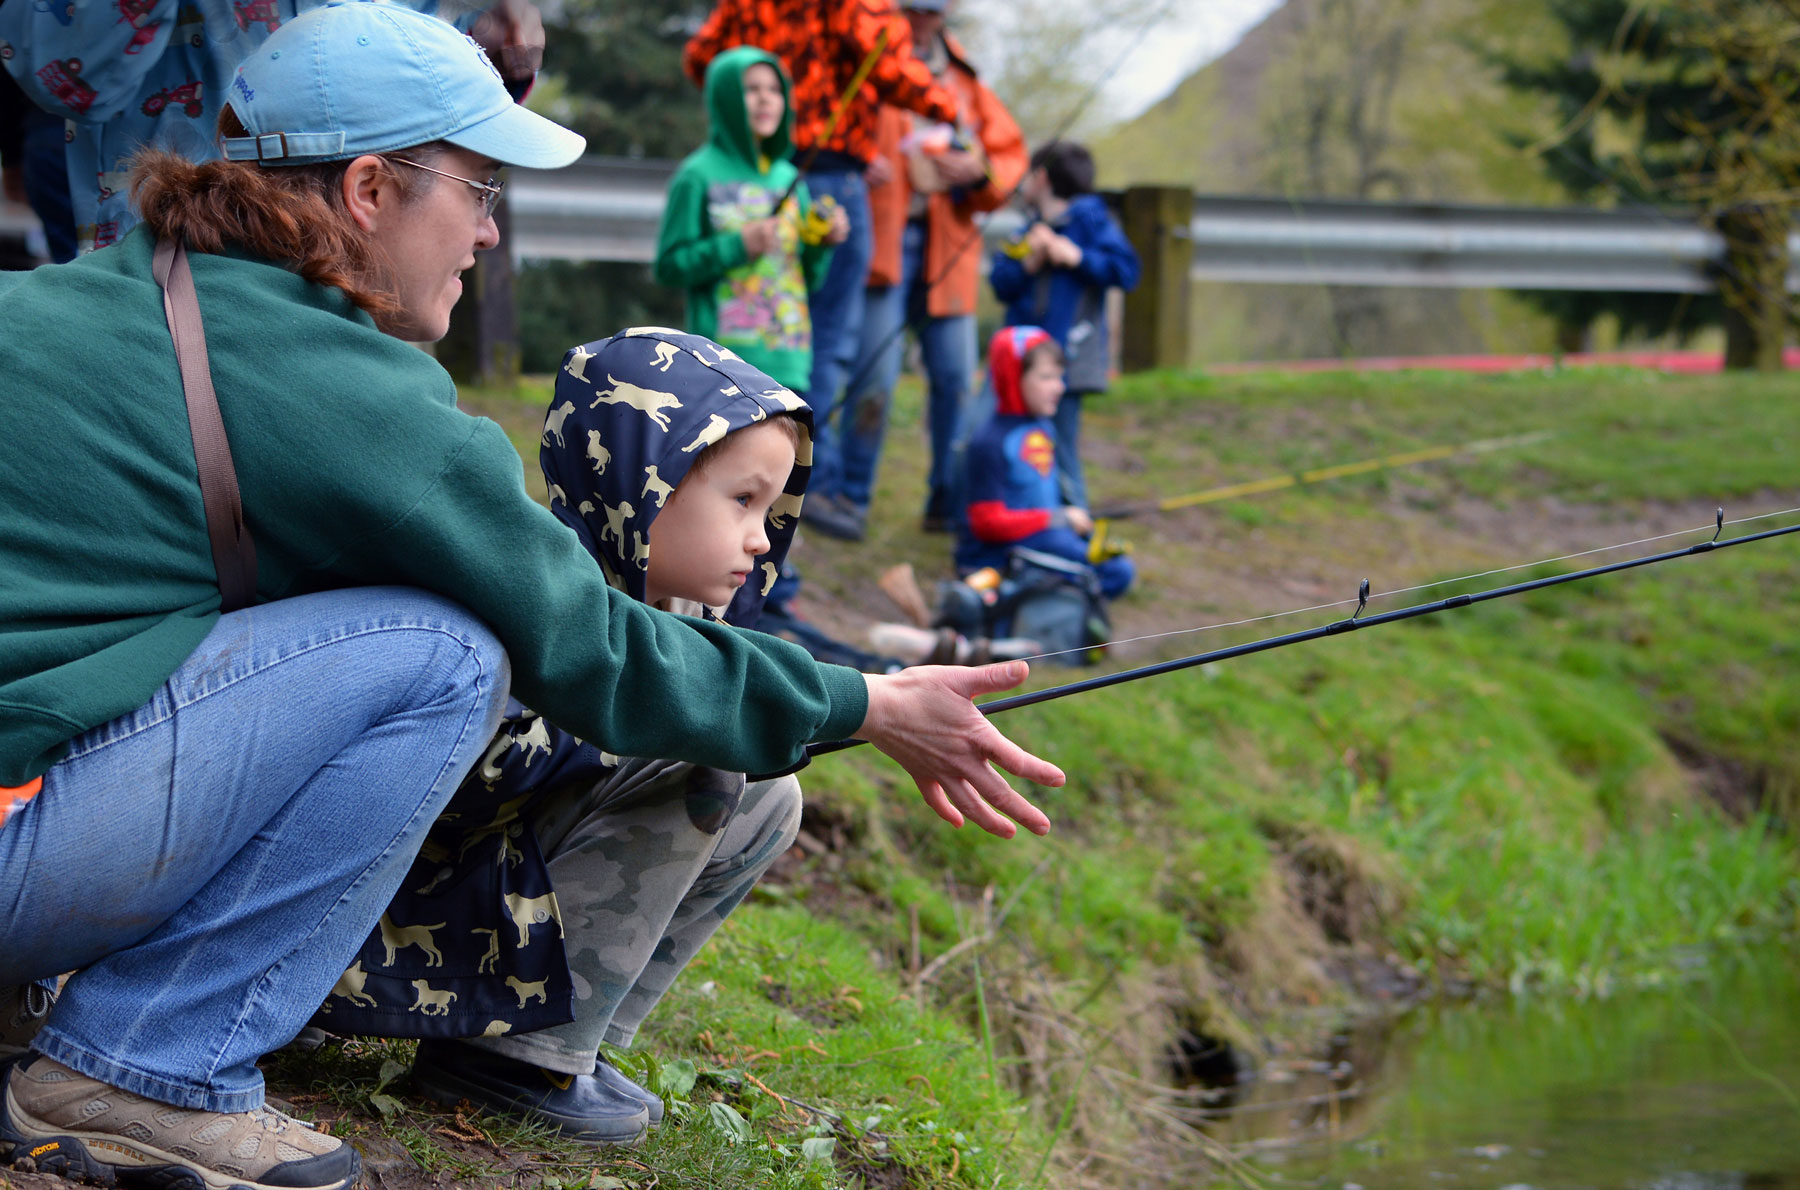 oregon invites families to enjoy free fishing weekend